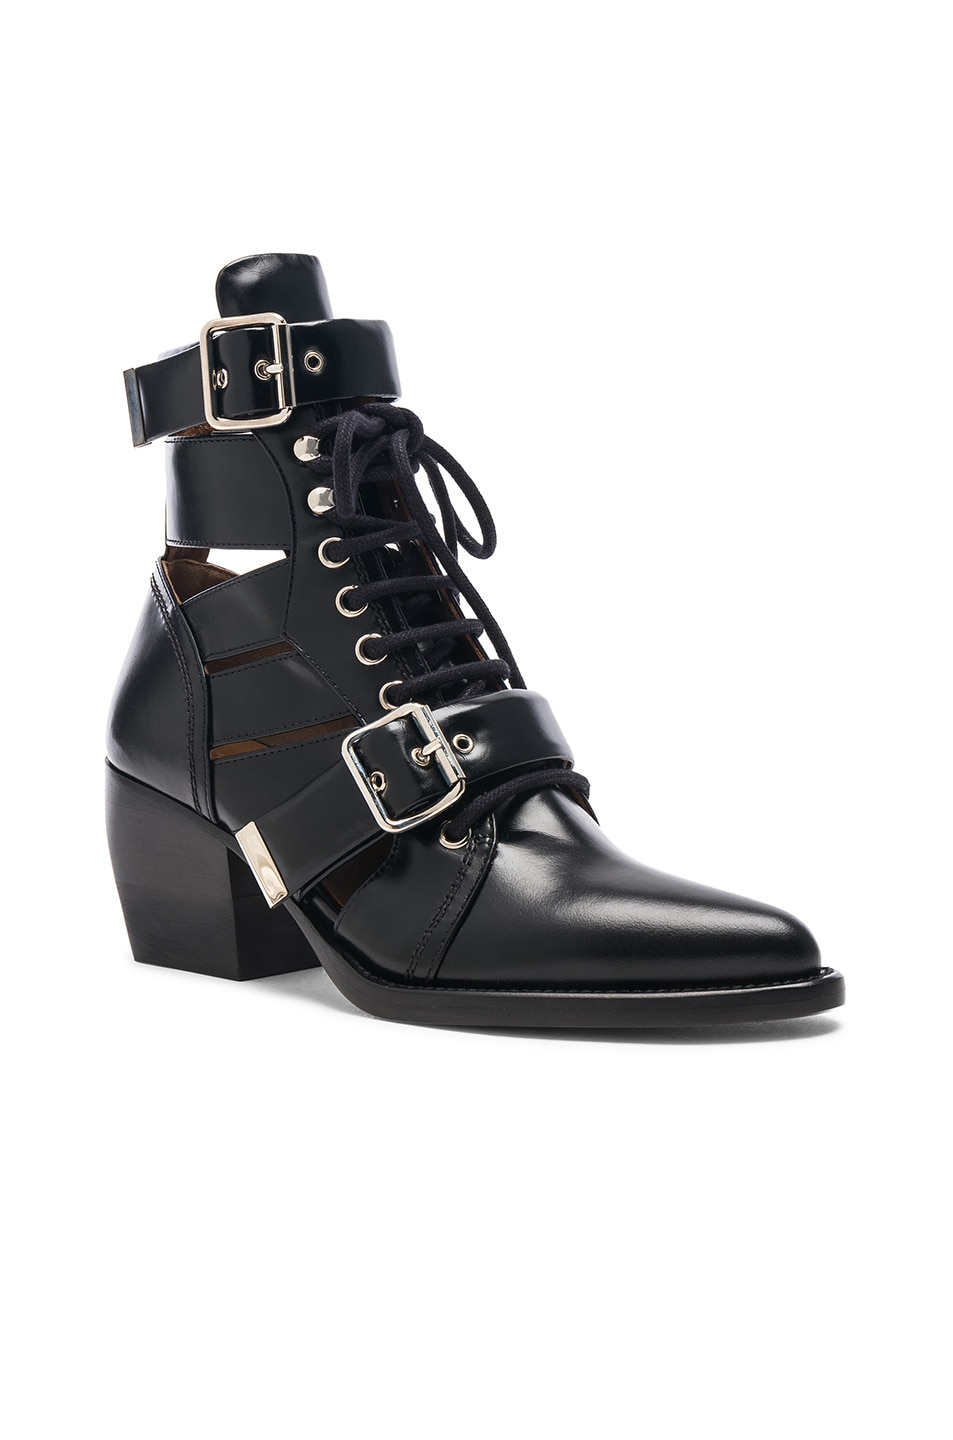 Image 2 of Chloe Rylee Leather Lace Up Buckle Boots in Black